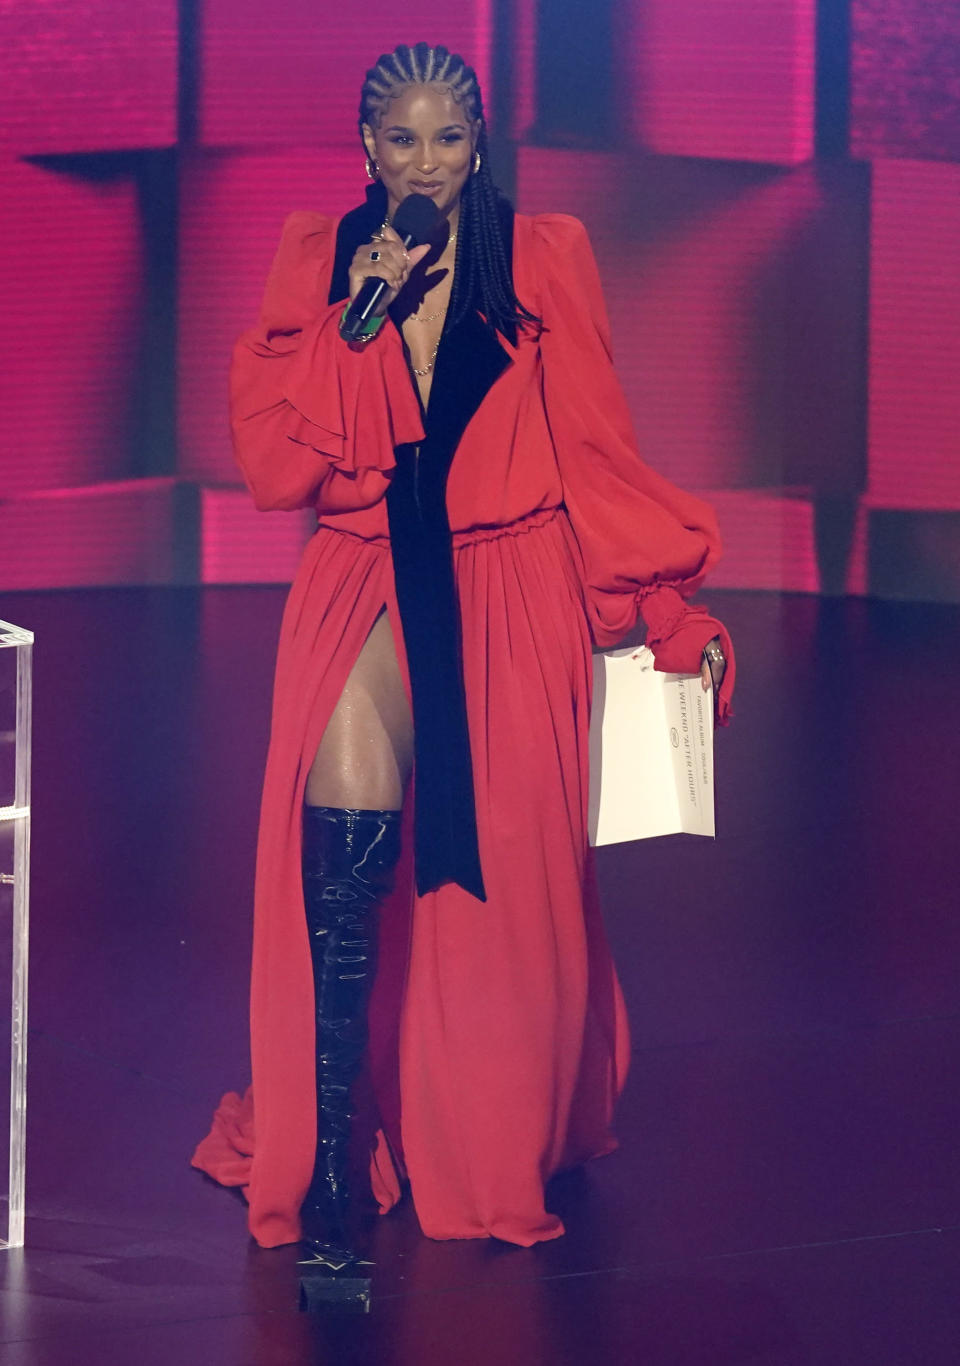 CORRECTS YEAR TO 2020 - Ciara presents the award for favorite soul/R&B album at the American Music Awards on Sunday, Nov. 22, 2019, at the Microsoft Theater in Los Angeles. (AP Photo/Chris Pizzello)